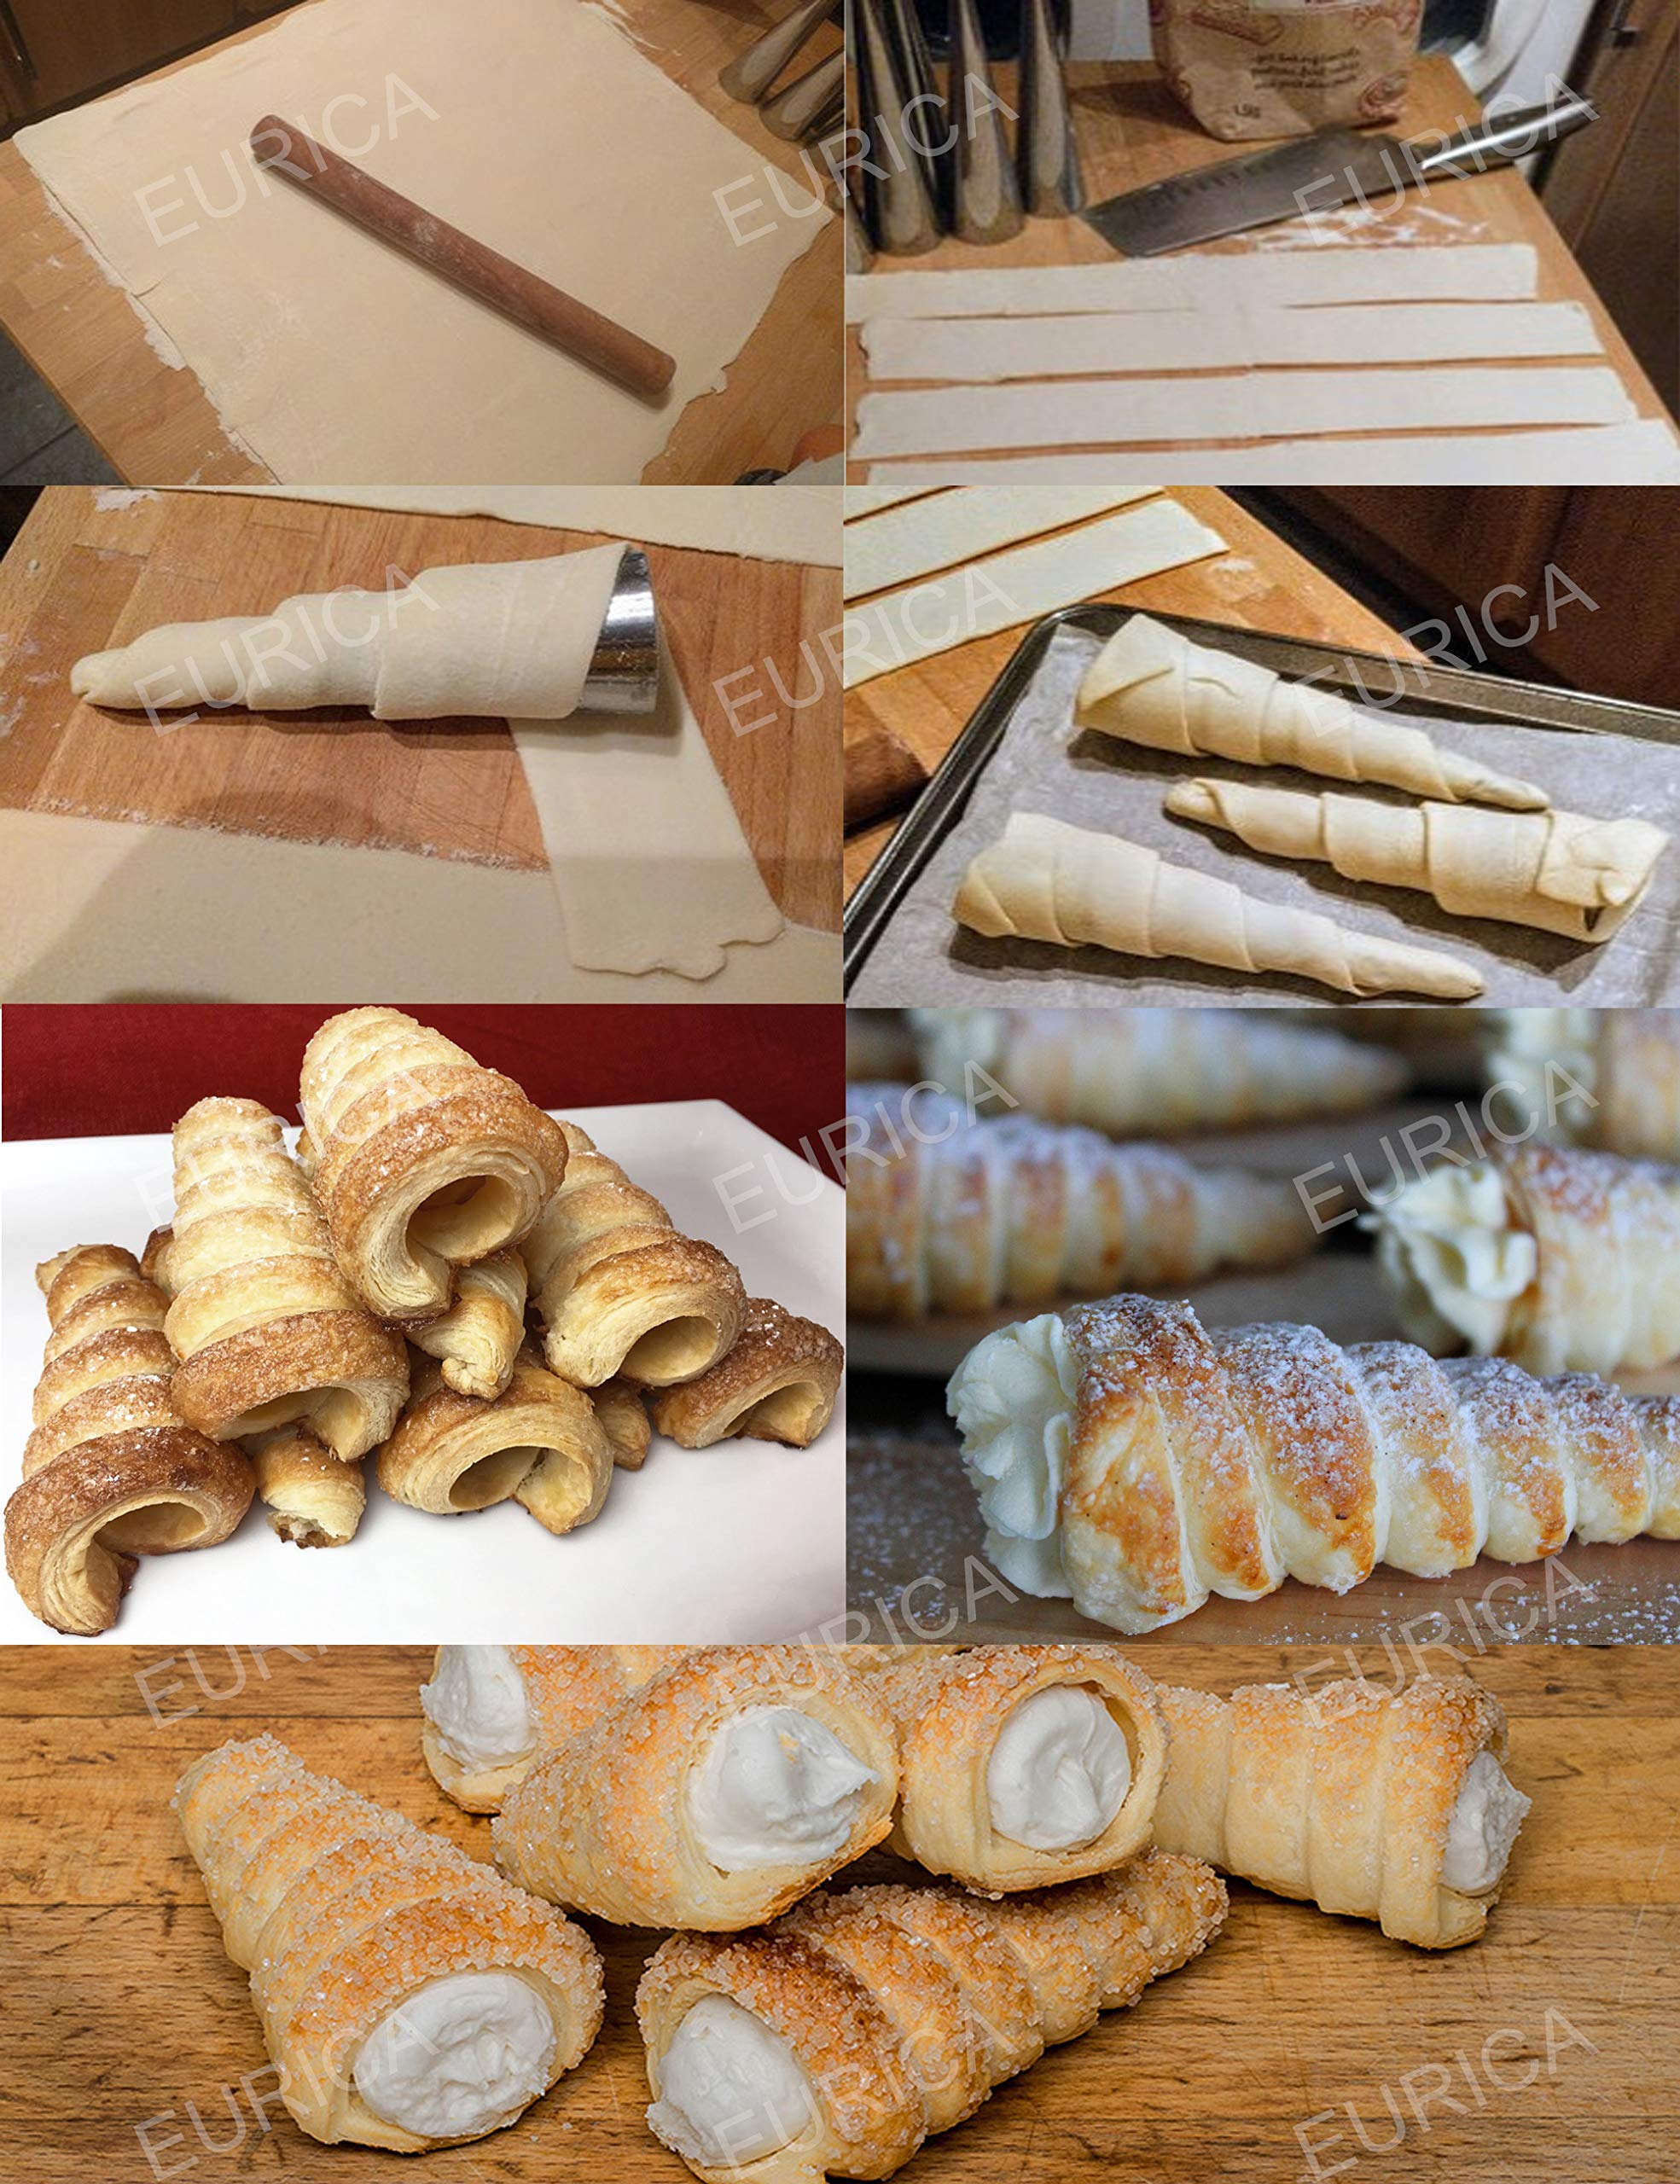 Cream Horn Molds EURICA 5-inch Large Size Cream Horn Forms Pack of 16 Cannoli Tubes Ice Cream Mold Stainless Steel Lady Lock Puff Pastry Cream Horn Mold Waffle Cone Pastry Roll Horn Croissant Mold 7 1. SIZE and MATERIAL: Height: 5 inches/12.7cm; Diameter:1.4 inches/3.6cm. For making Big Horn. Material: 100% High Quality anti rust Stainless Steel with NO coating on both inside and outside, which is non-toxic and healthy. 2. PACKAGE INCLUDE: 16 pcs cream horn molds and 1 cleaning brush. You can make 16 HORNS IN ONE GO! Each product has an individual package, which prevents the cream horn molds from being polluted and abraded, and makes them easy to be separated. 3. EAST TO MAINTAIN AND SPACE SAVING: Smooth surface prevents pastry sticking to it. Almost seamless cream horn molds do not catch dough and make it easy to remove baked goods. Wash with our cleaning brush free for you easily. Dry thoroughly before storage. Only need a small space if you stack the cream horn molds together one by one.